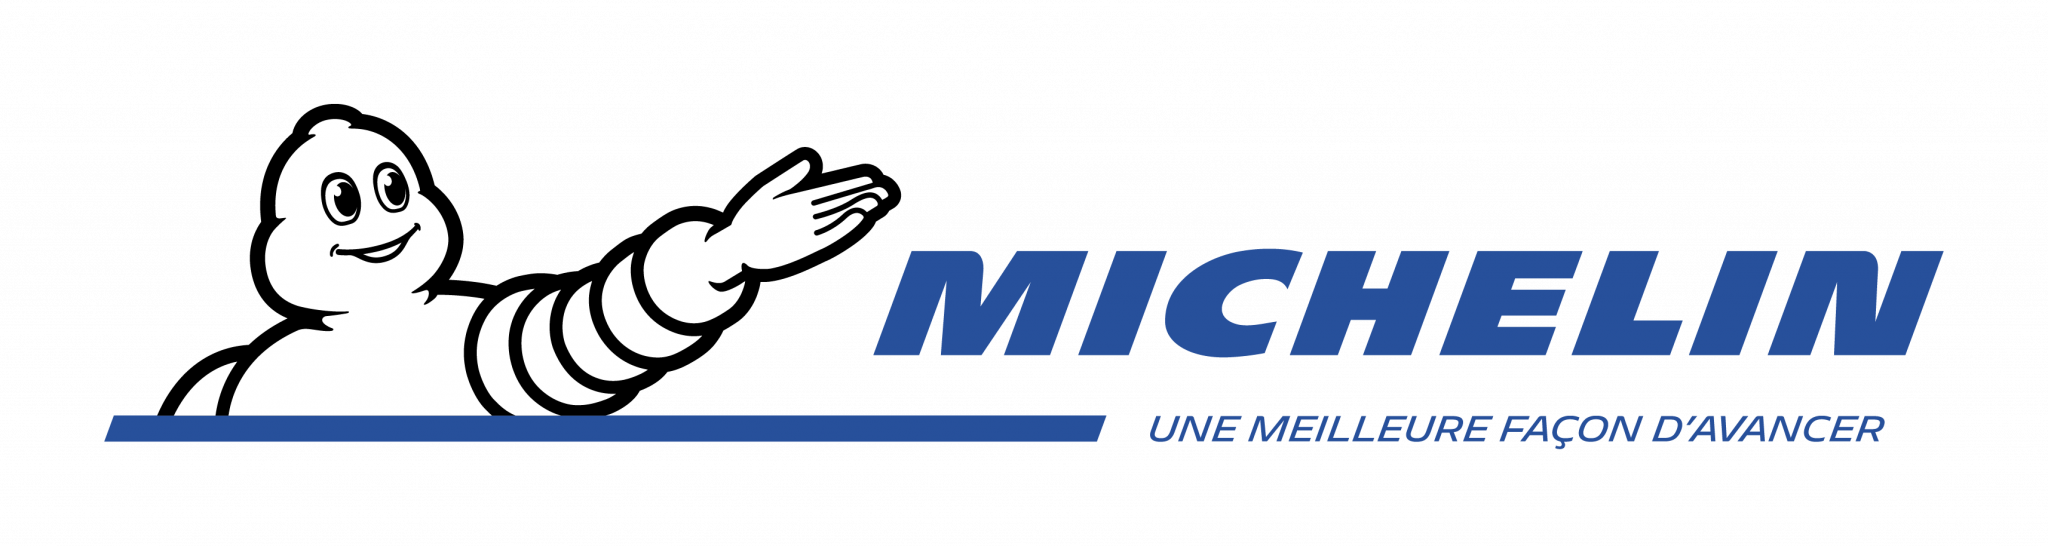 Michelin_G_H_Fr_WhiteBG_RGB_0618